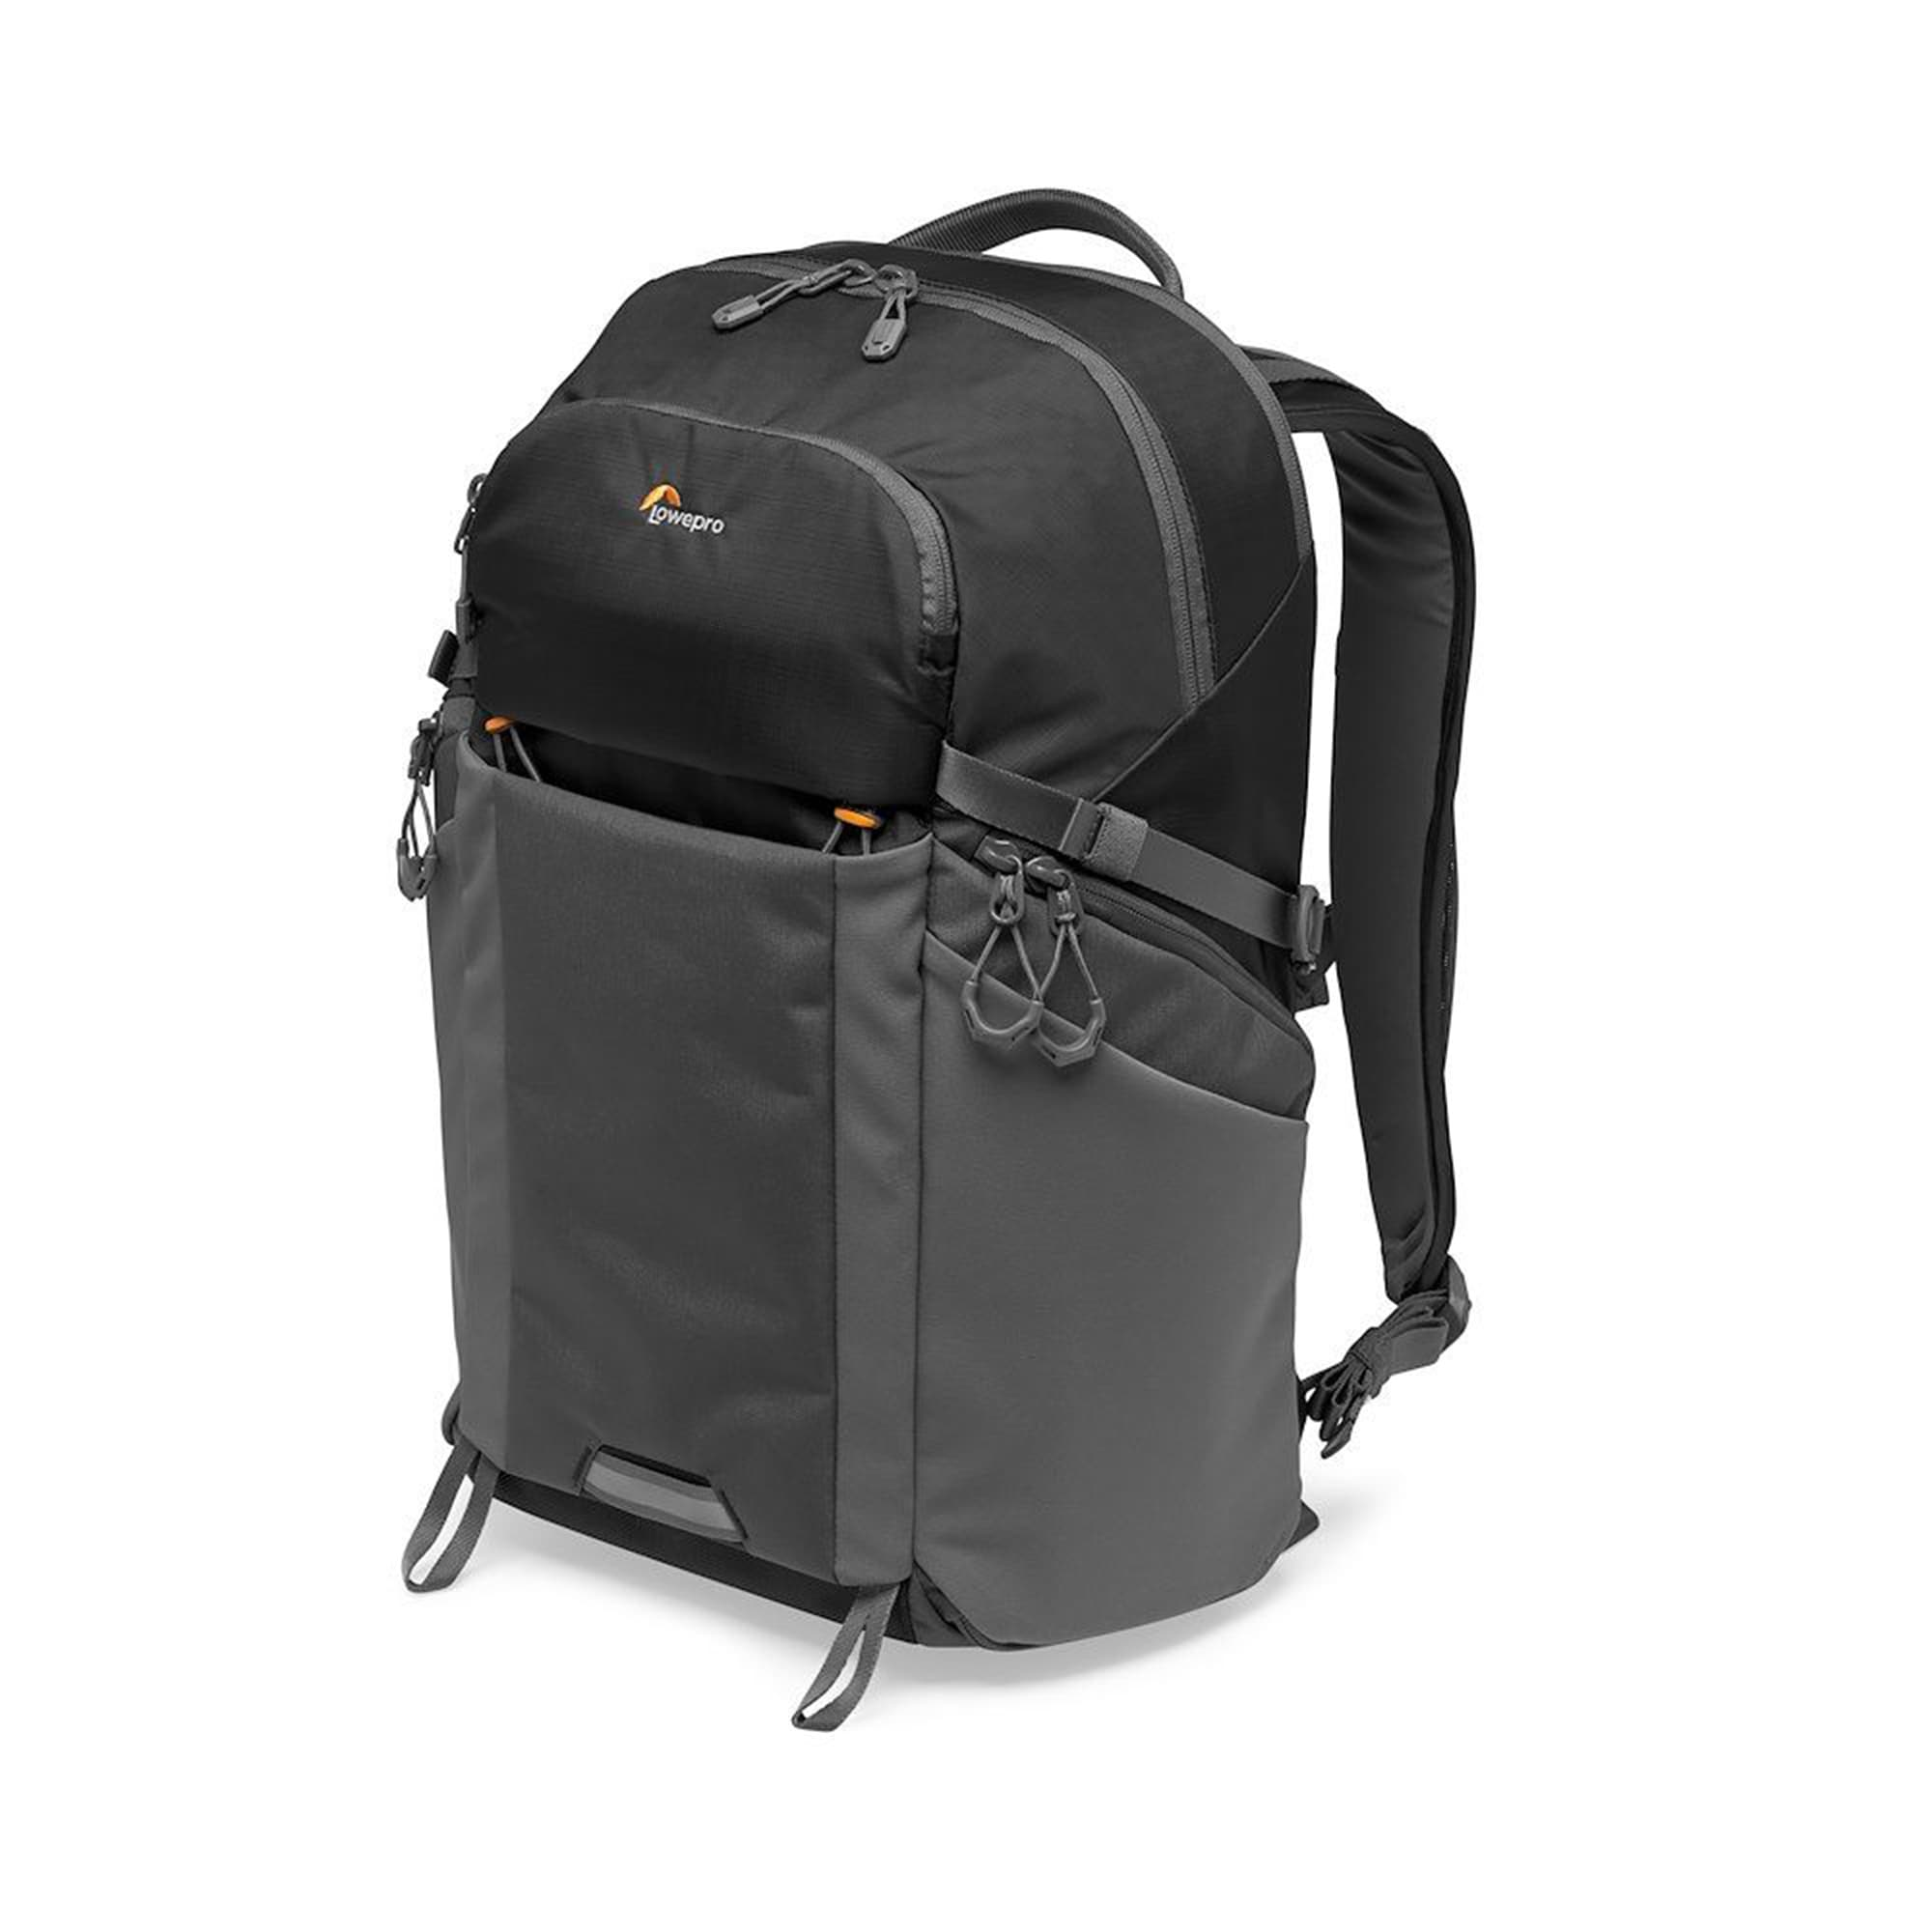 camera-backpack-lowepro-photo-active-bp-300-lp37255-pww